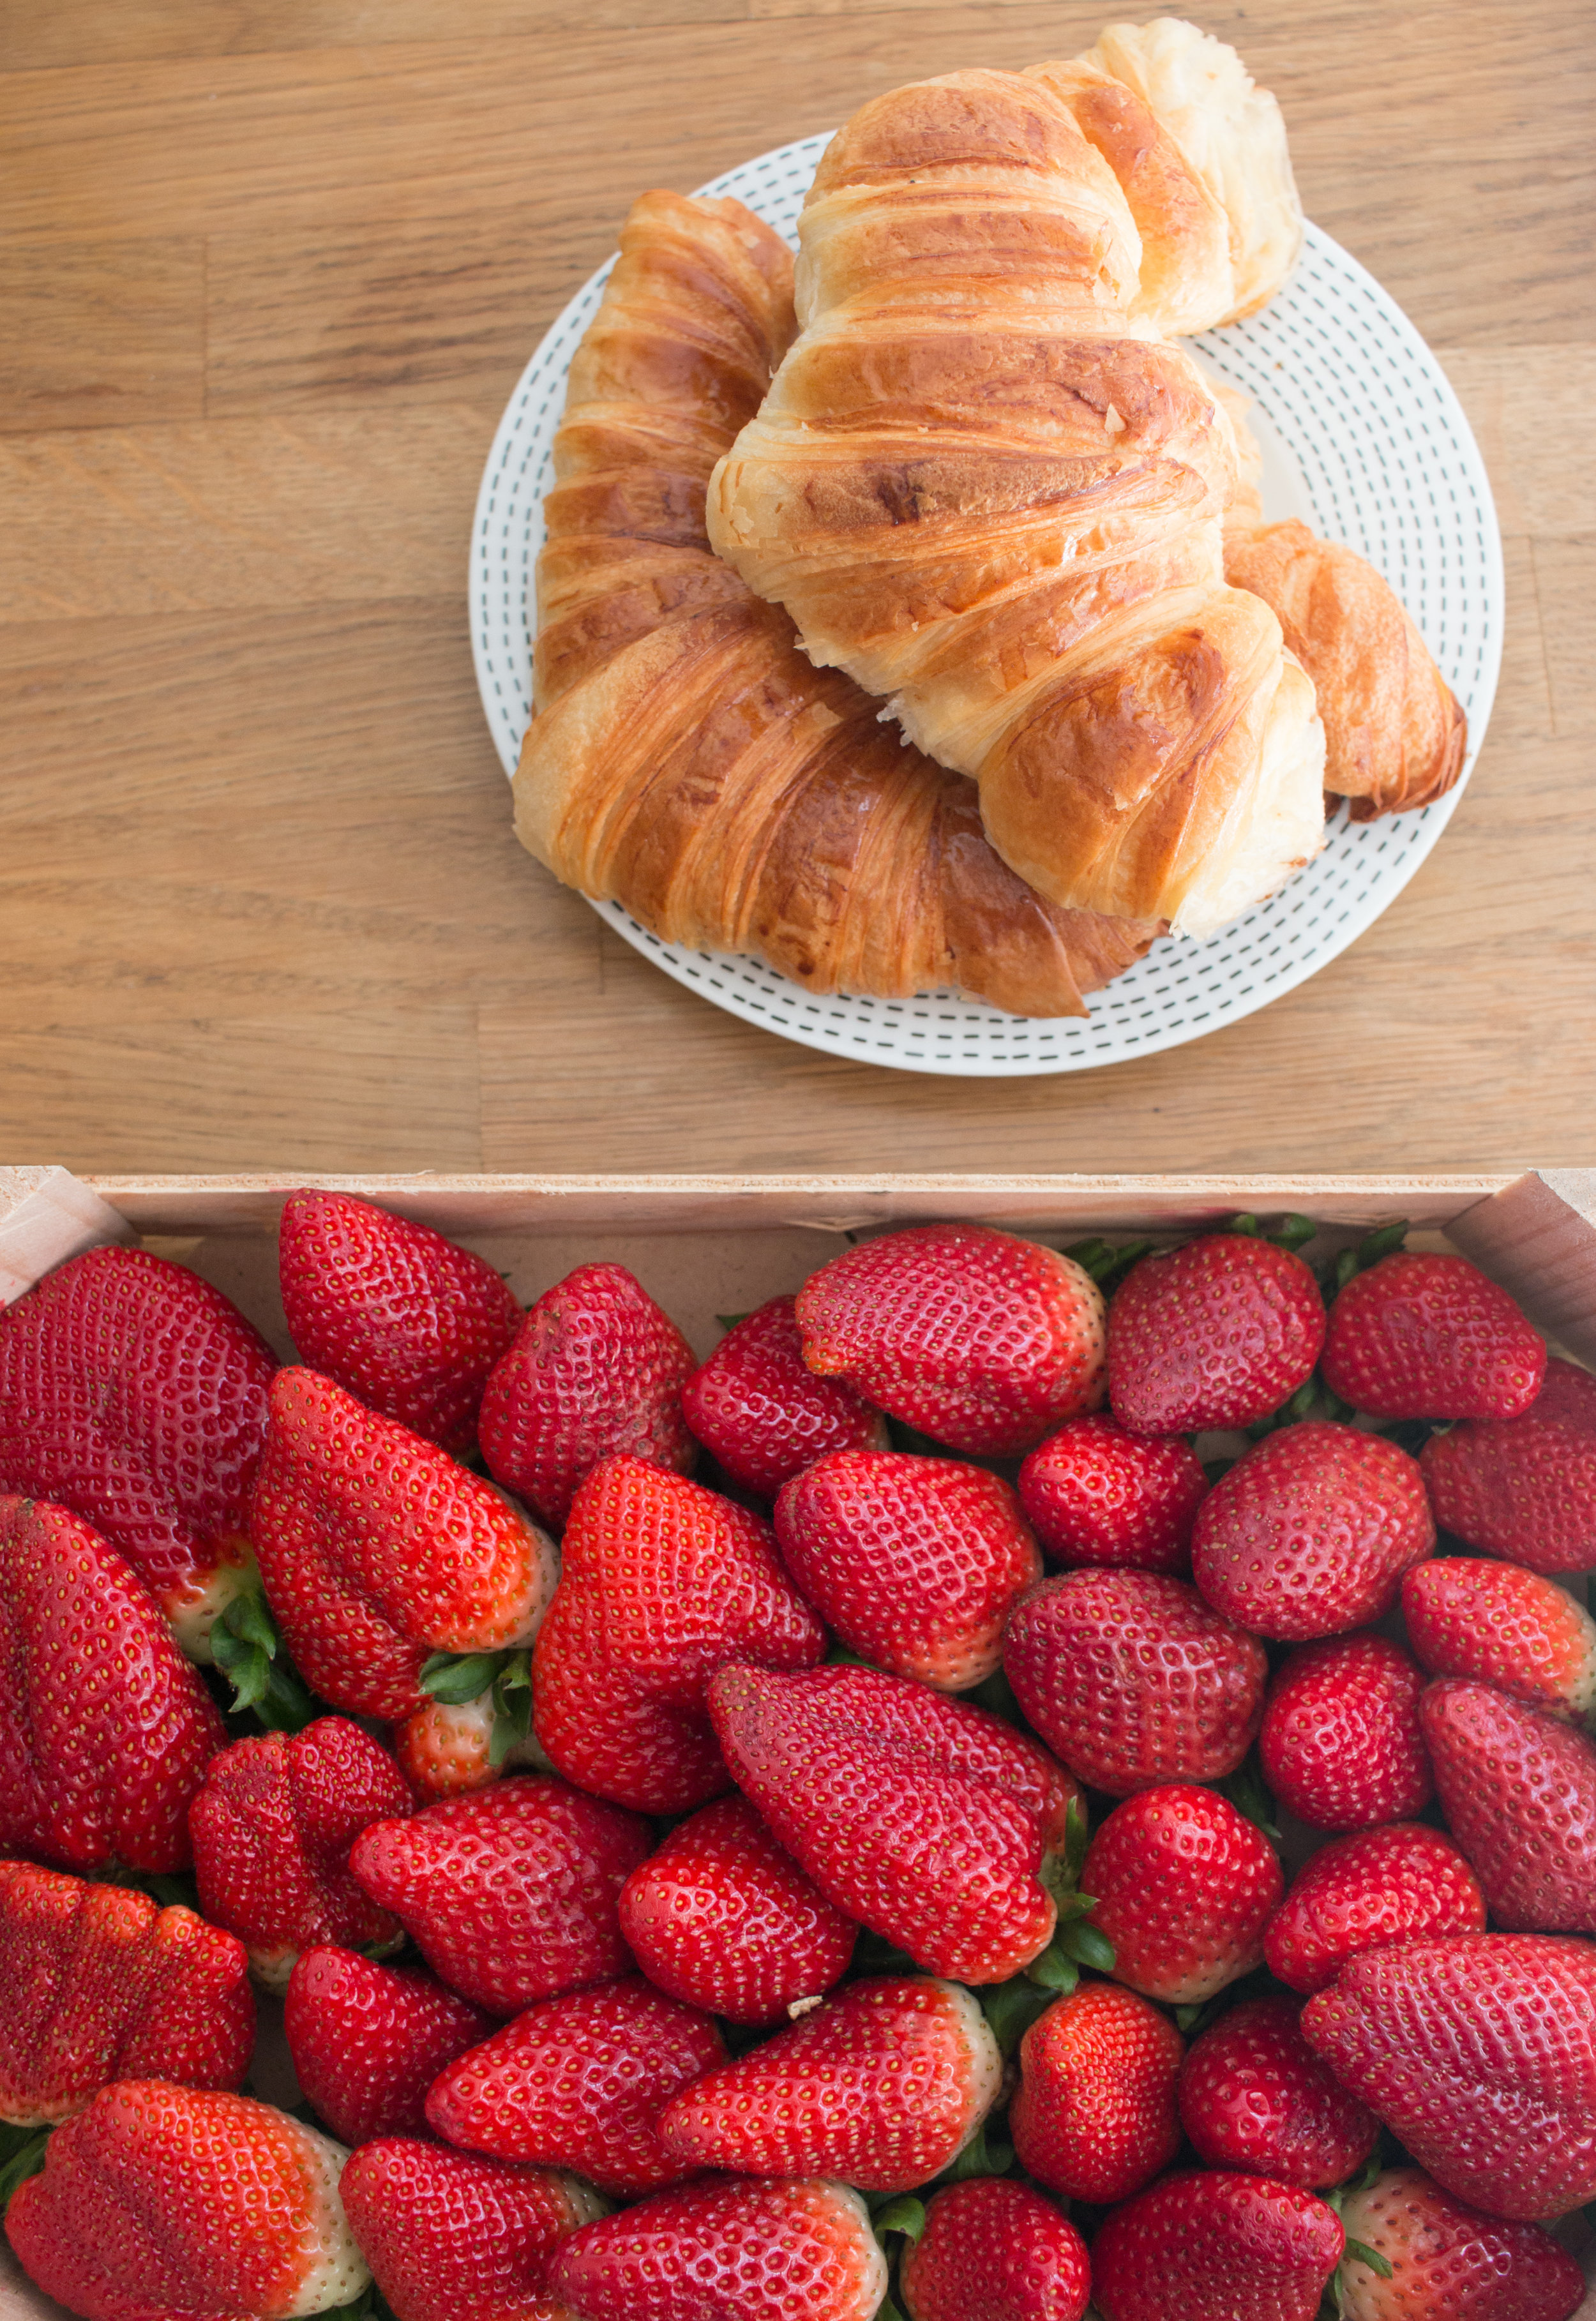 Strawberries and croissants Paris, France